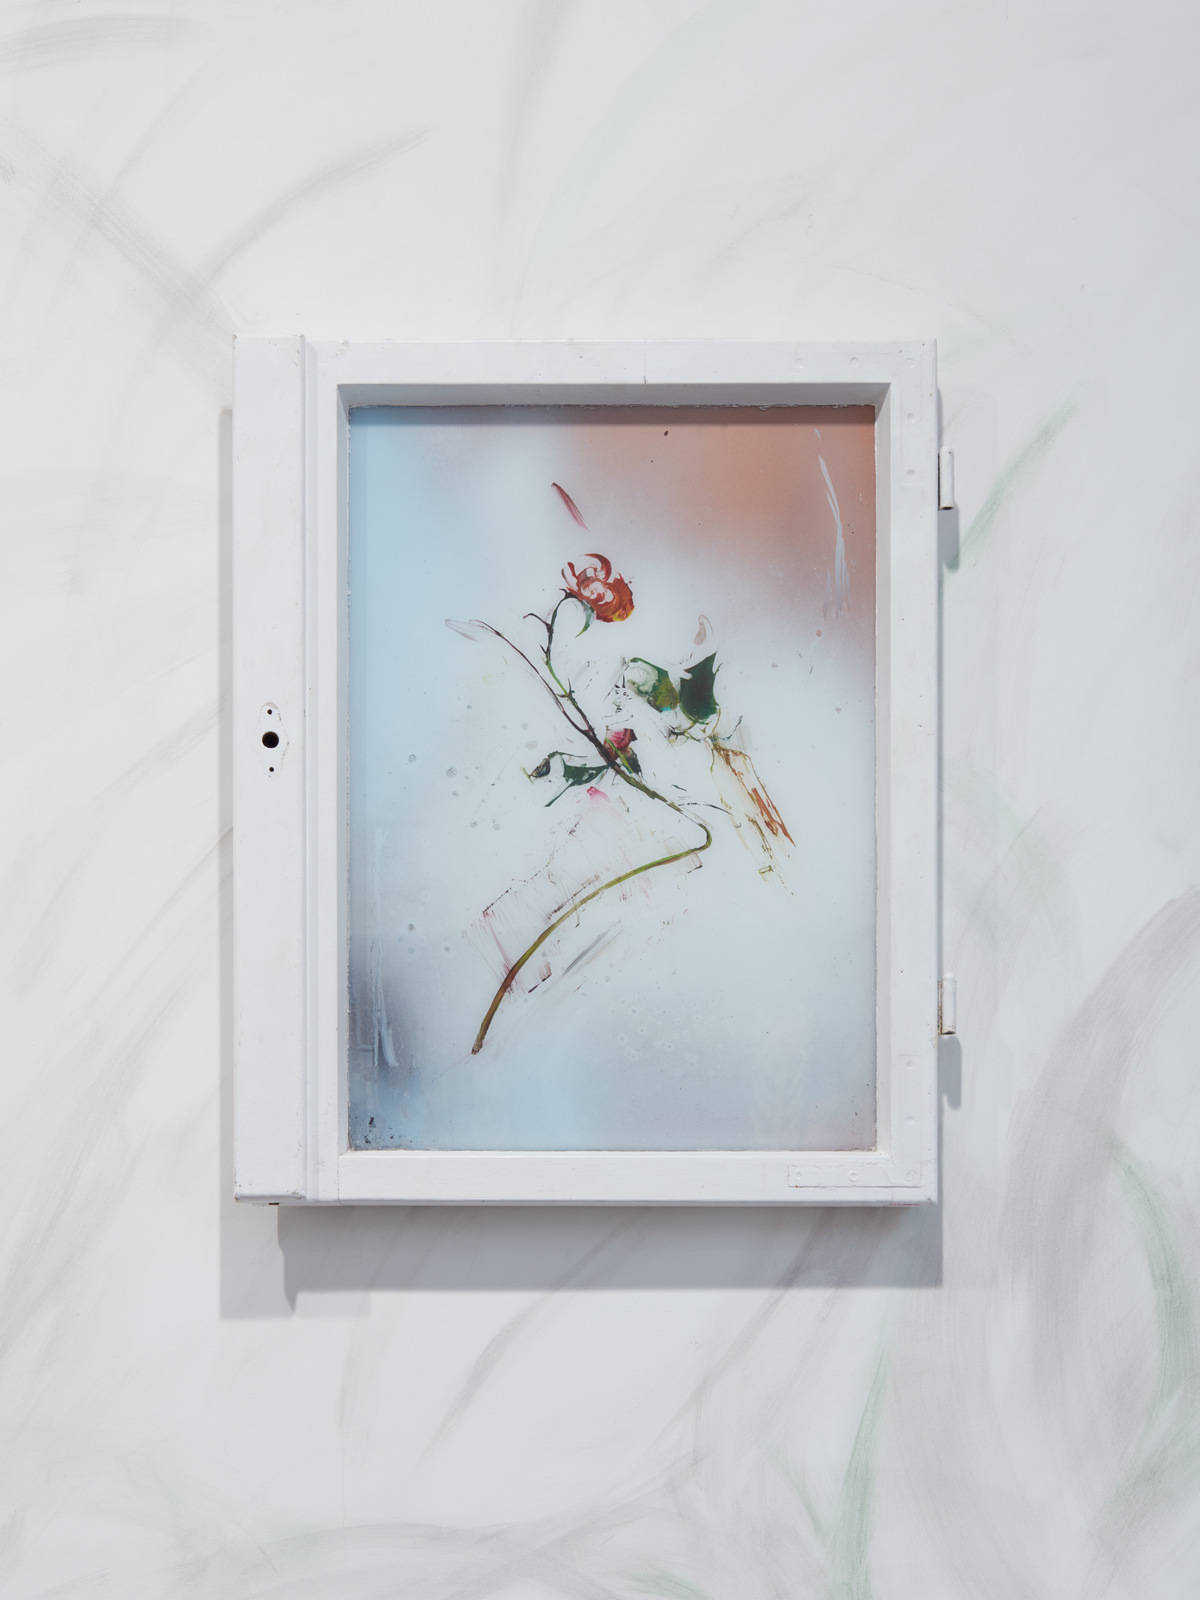 Tilman Hornig, The Newromanzer, 2016, Acrylic and spray paint reverse glass painting in window frame, 26 x 20 in, 66 x 50 cm